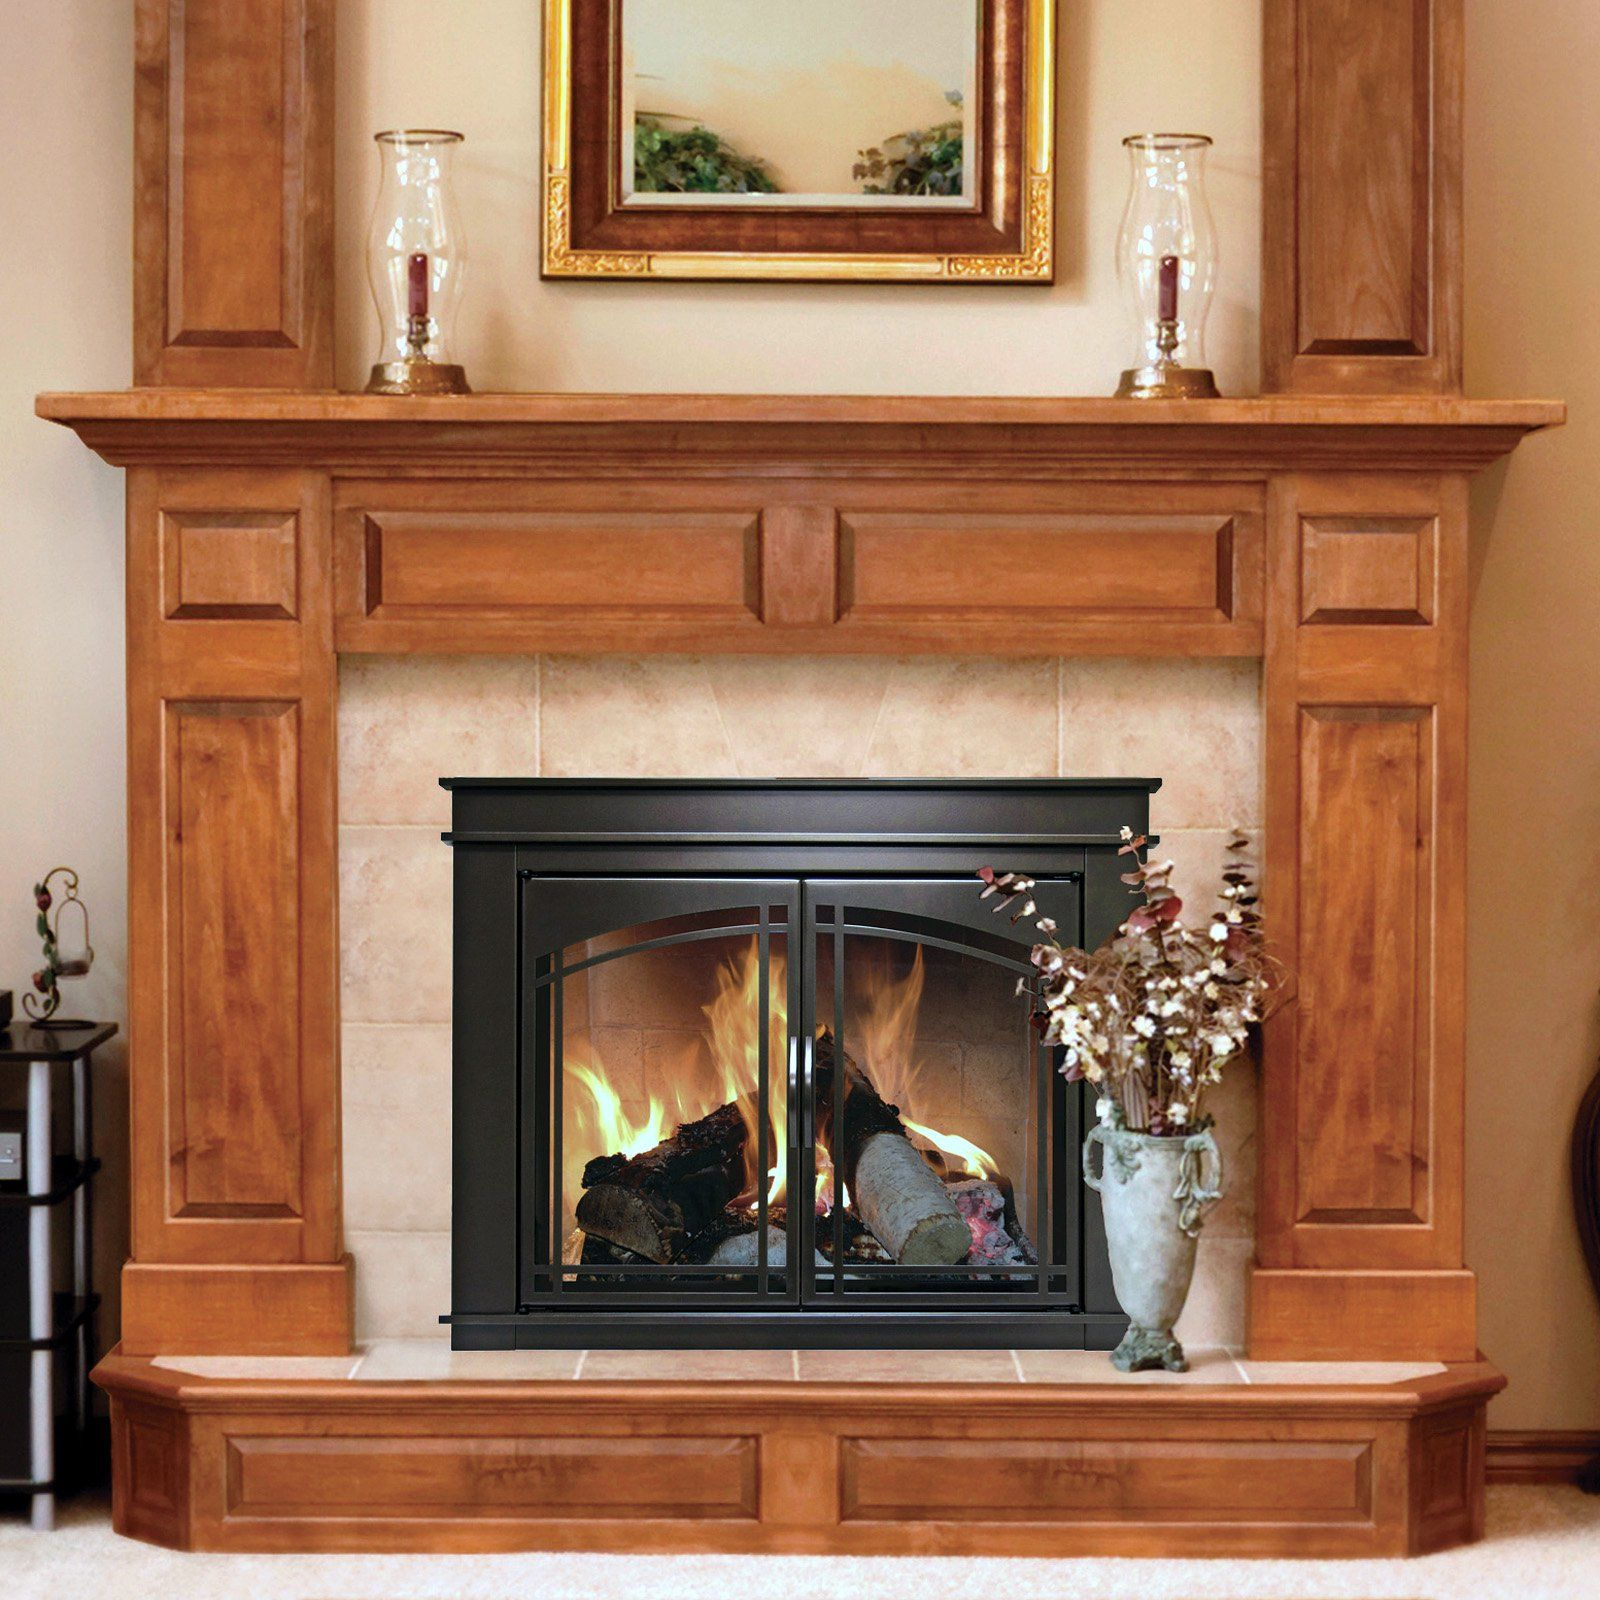 Pleasant Hearth Fenwick Cabinet Fireplace Screen And Arch Prairie Smoked Gl Doors Oil Rubbed Bronze From Hayneedle